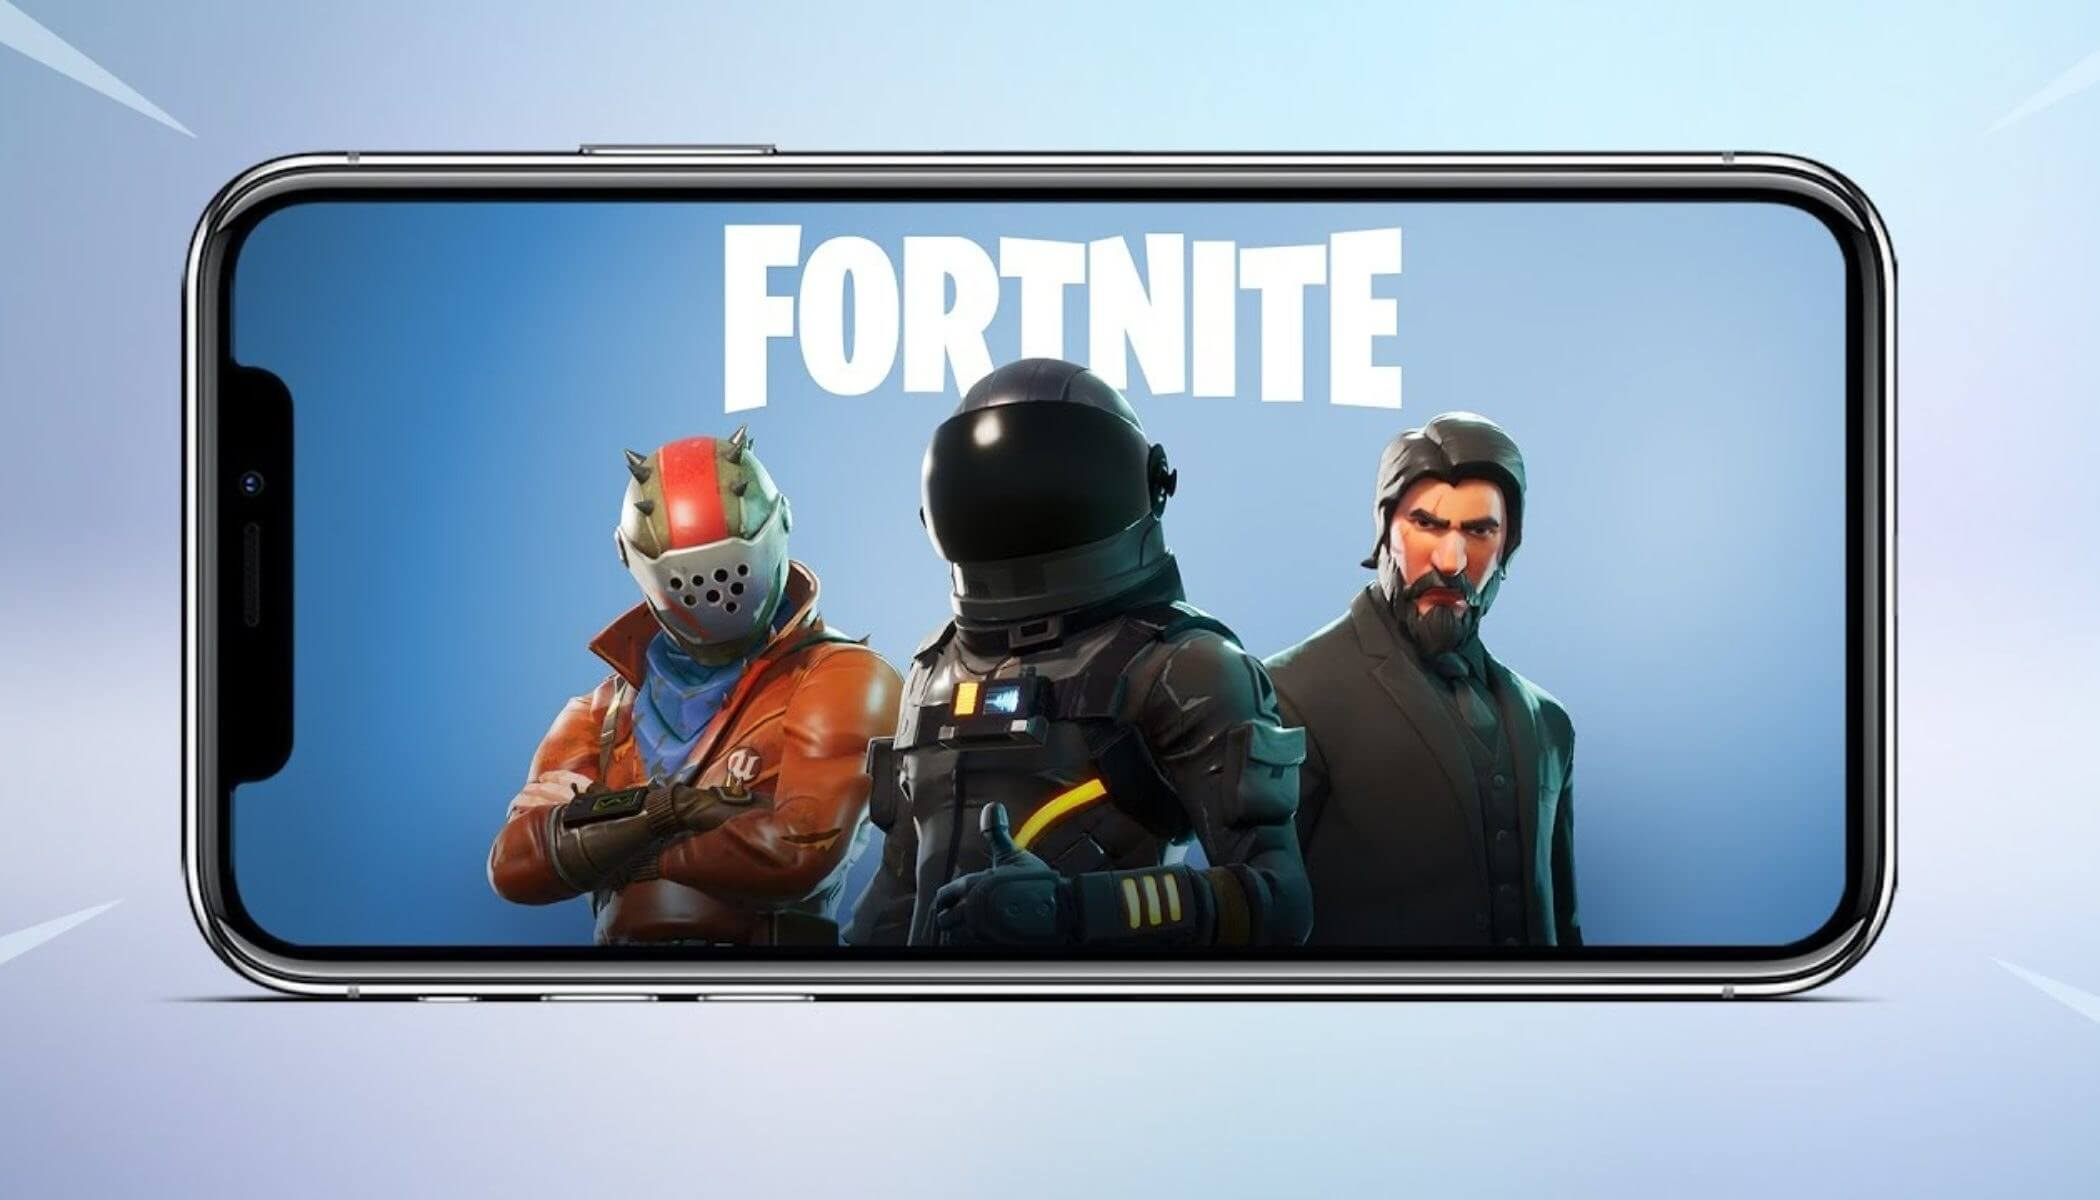 Sellers on eBay are trying to get thousands of dollars for used iPhones with Fortnite installed